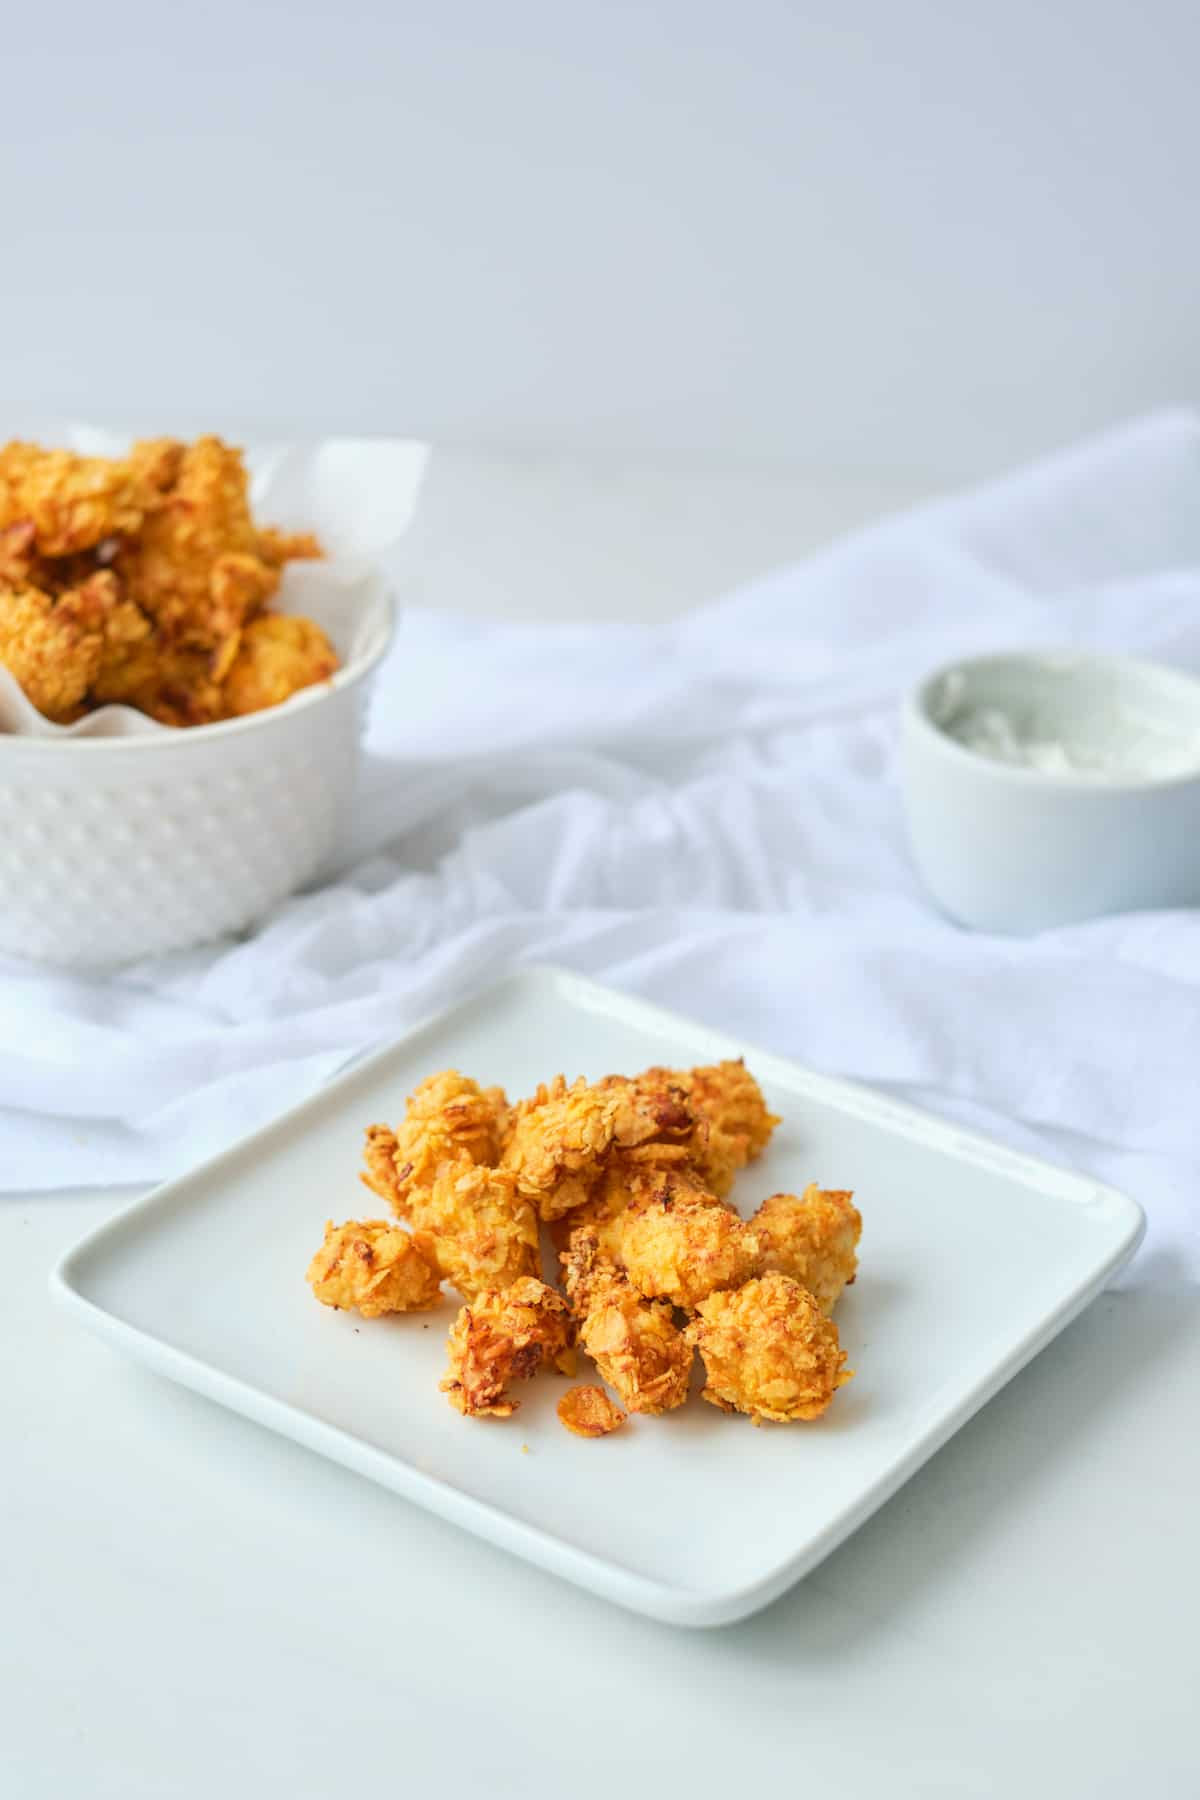 a plate of air fryer popcorn chicken set in front of a dipping sauce cup and a bowl of the finished popcorn chicken